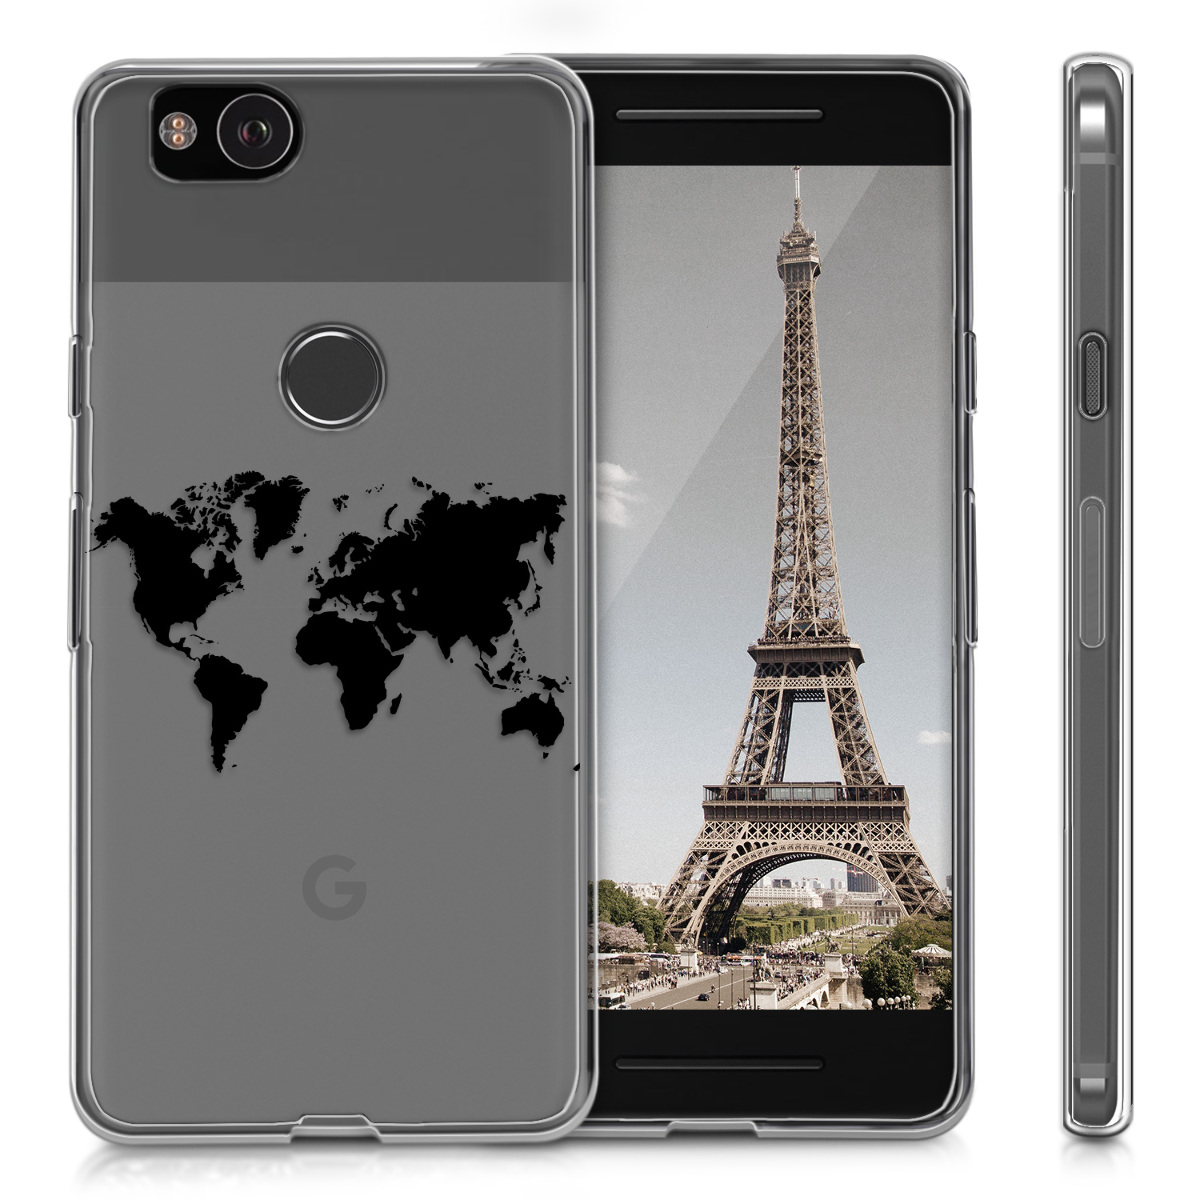 Kwmobile tpu silicone crystal case for google pixel 2 soft cover resntentobalflowflowcomponenttechnicalissues gumiabroncs Choice Image